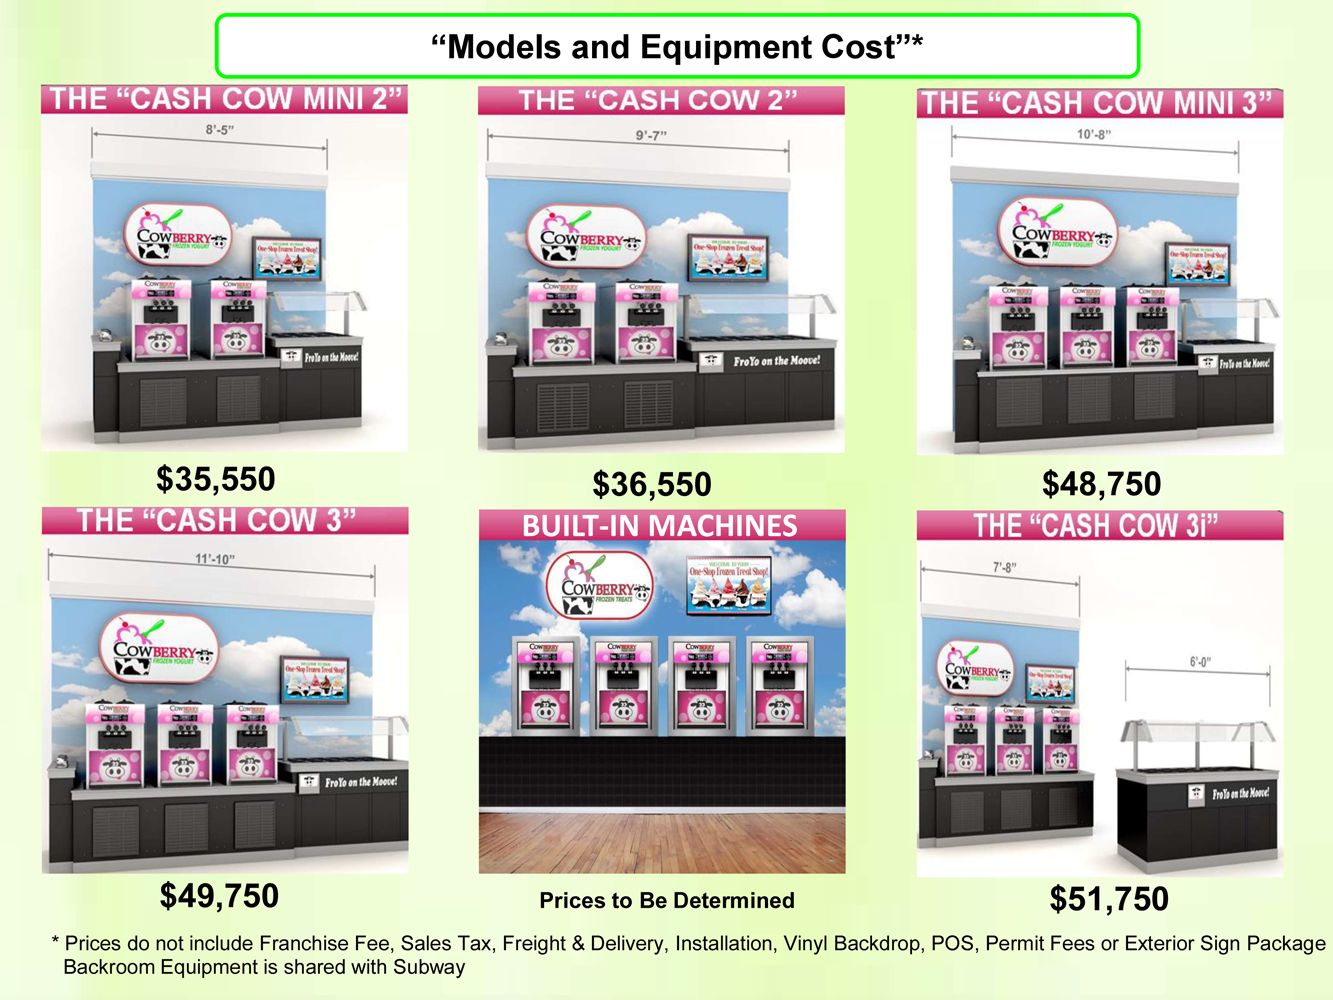 Models & Equipment Cost